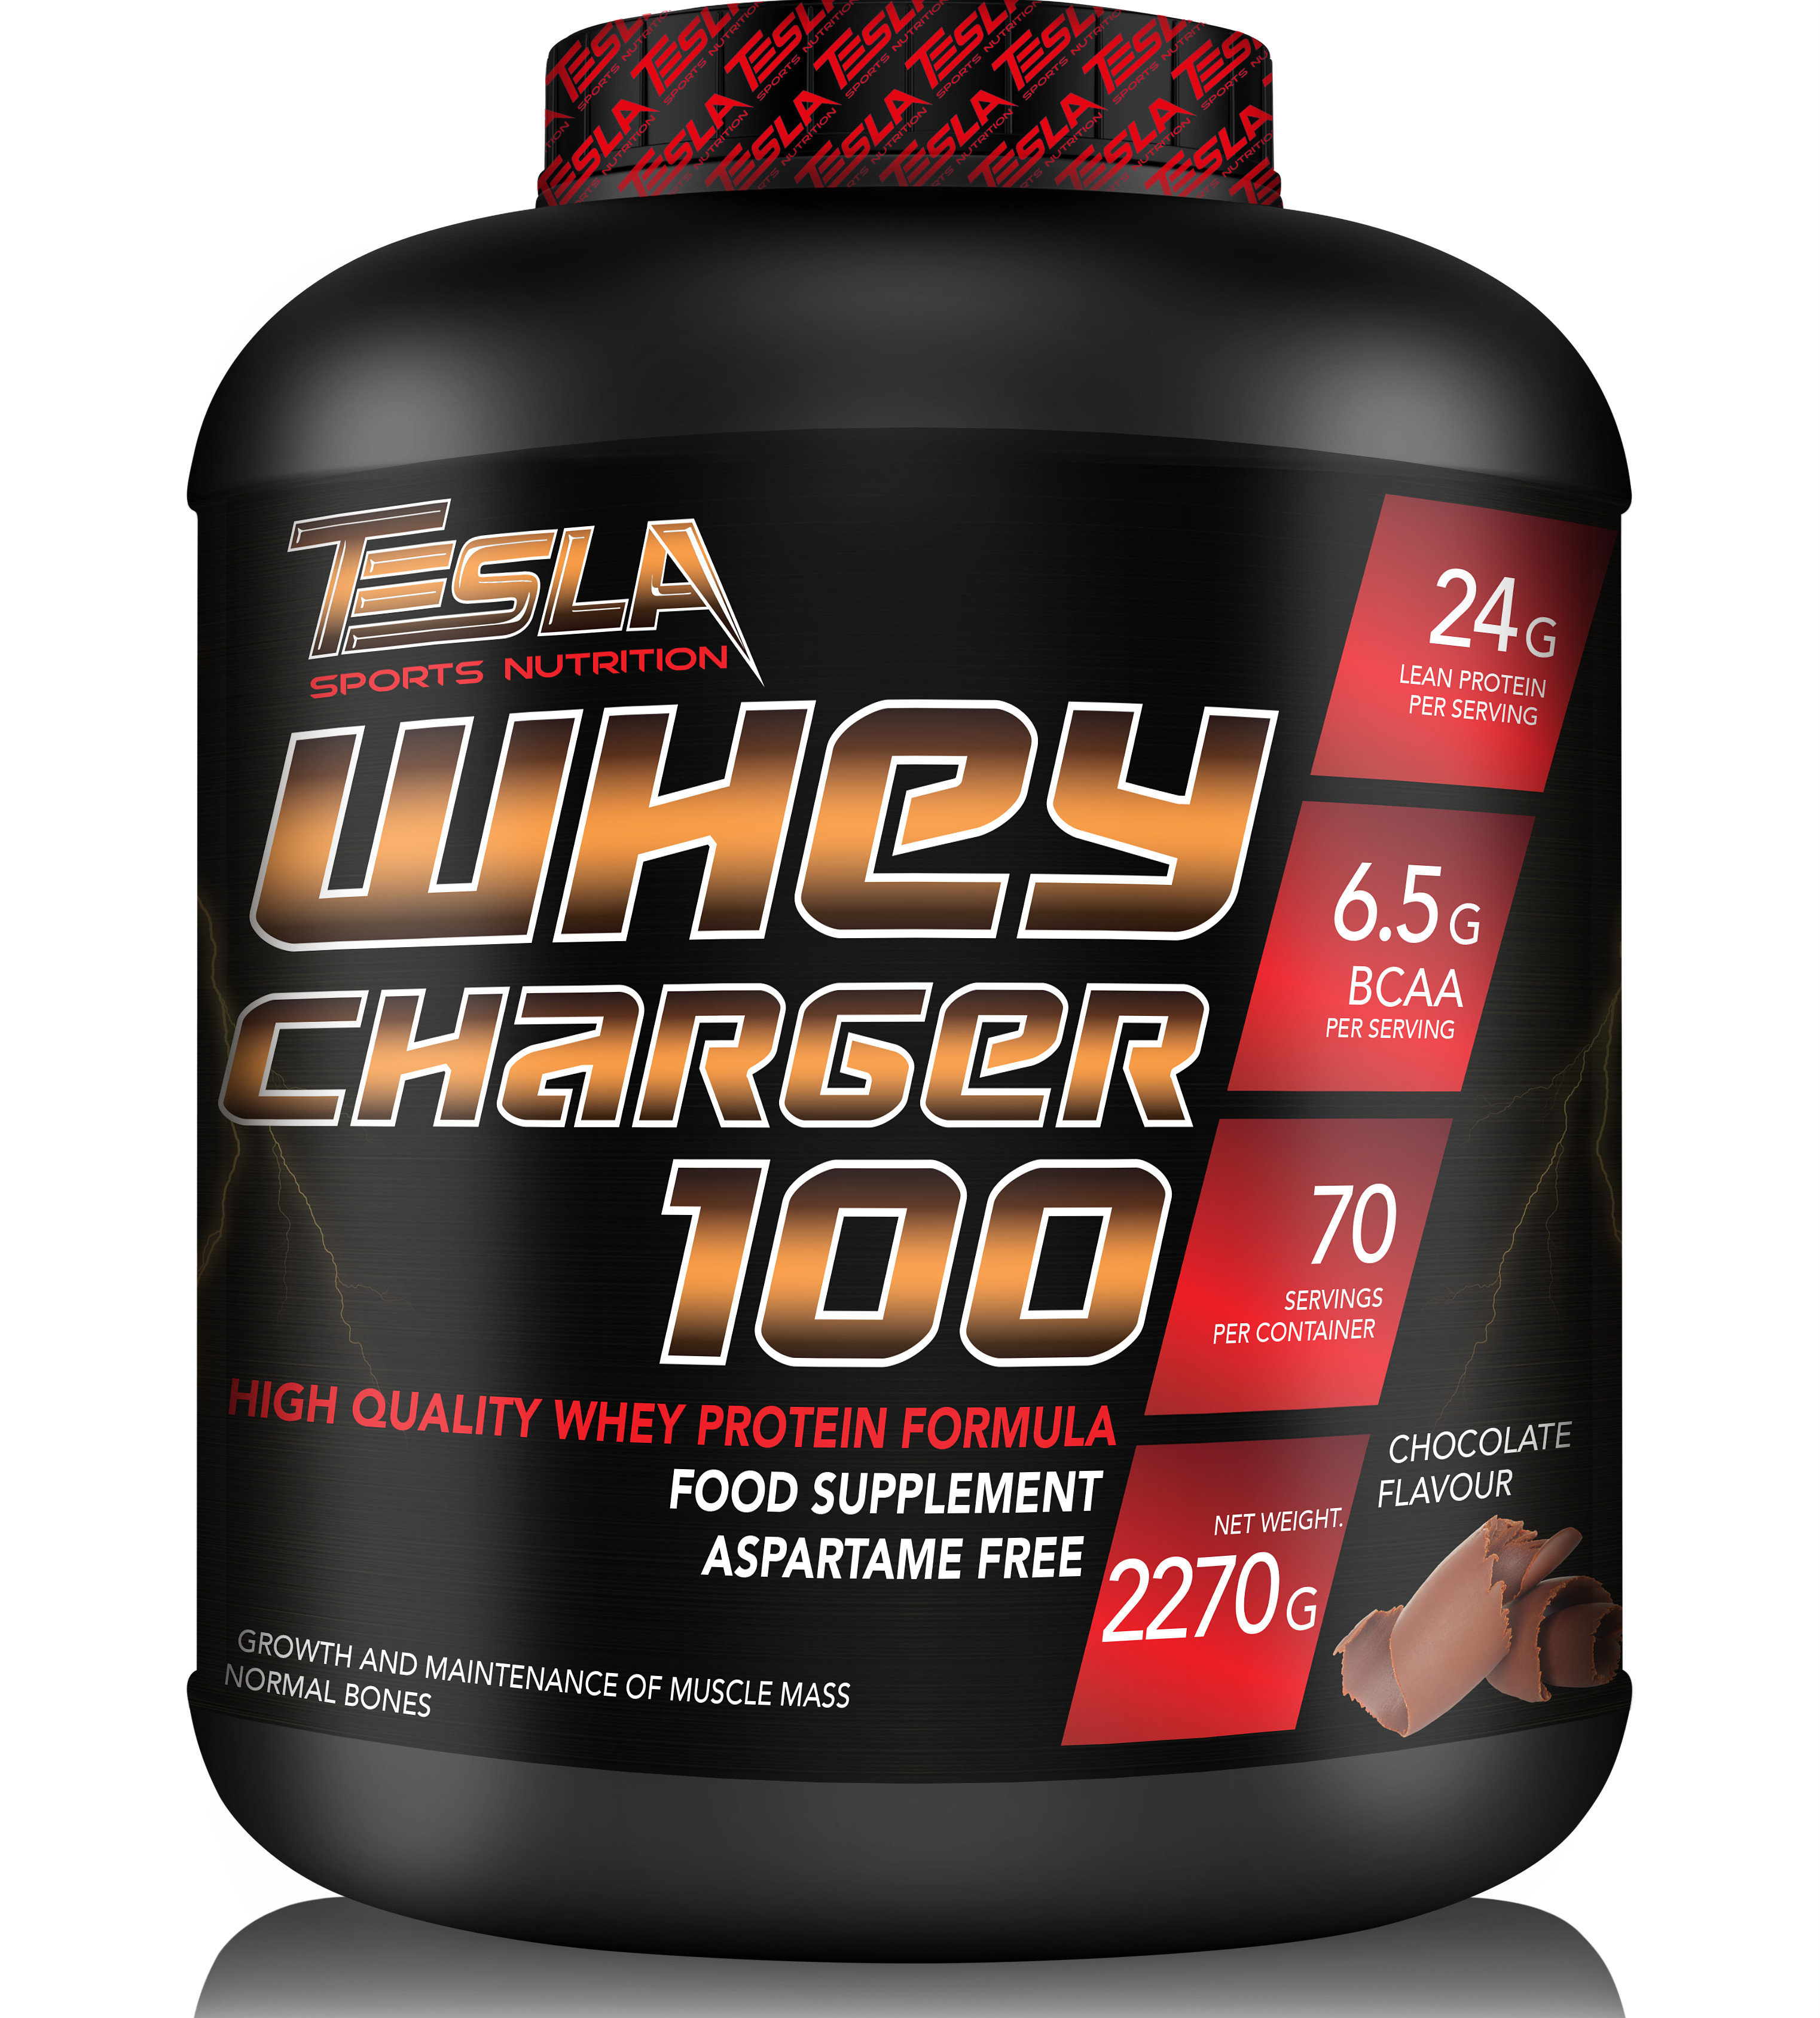 Whey Charger 100